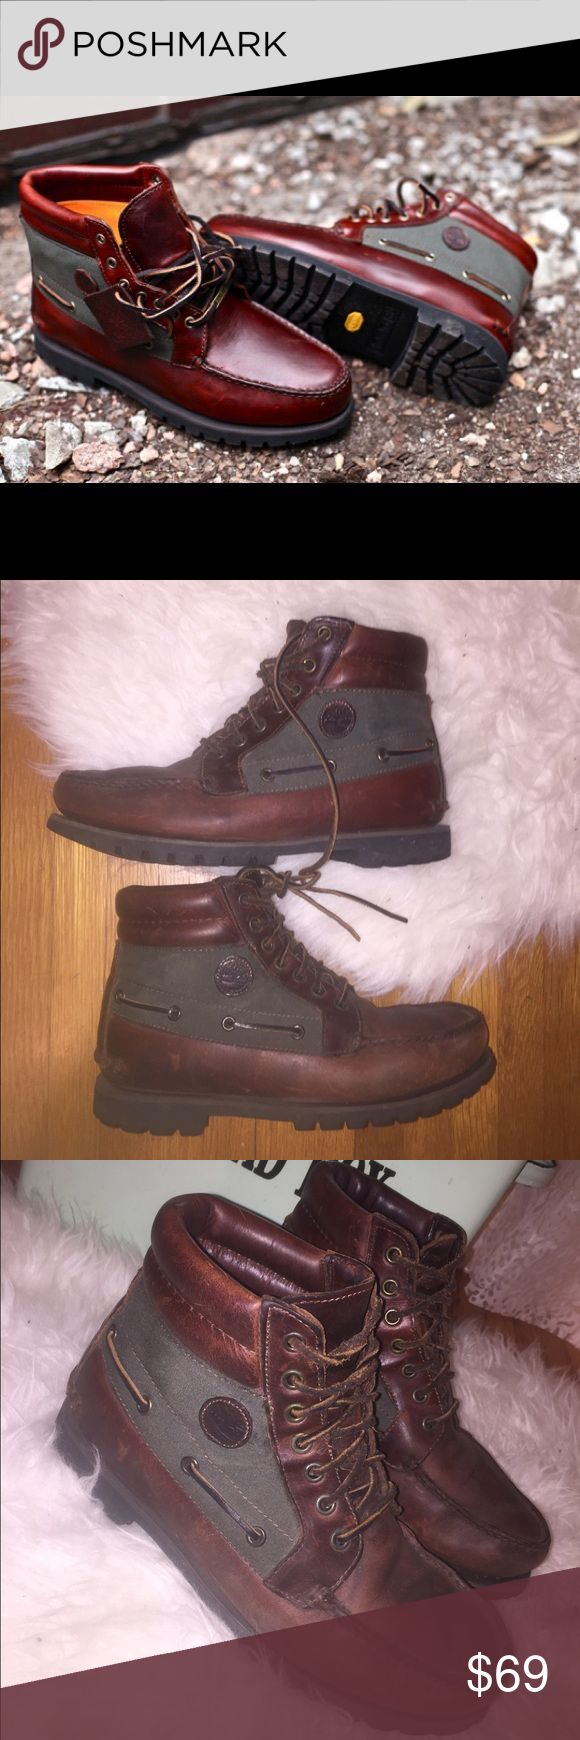 Timberland Genuine Leather Boots Genuine leather Timberland. Gore-Tex Boot. In excellent condition. All seams are perfect. Sole barely worn. Natural wear on the leather. NO TRADES.      Green and tan Timberland Shoes Boots